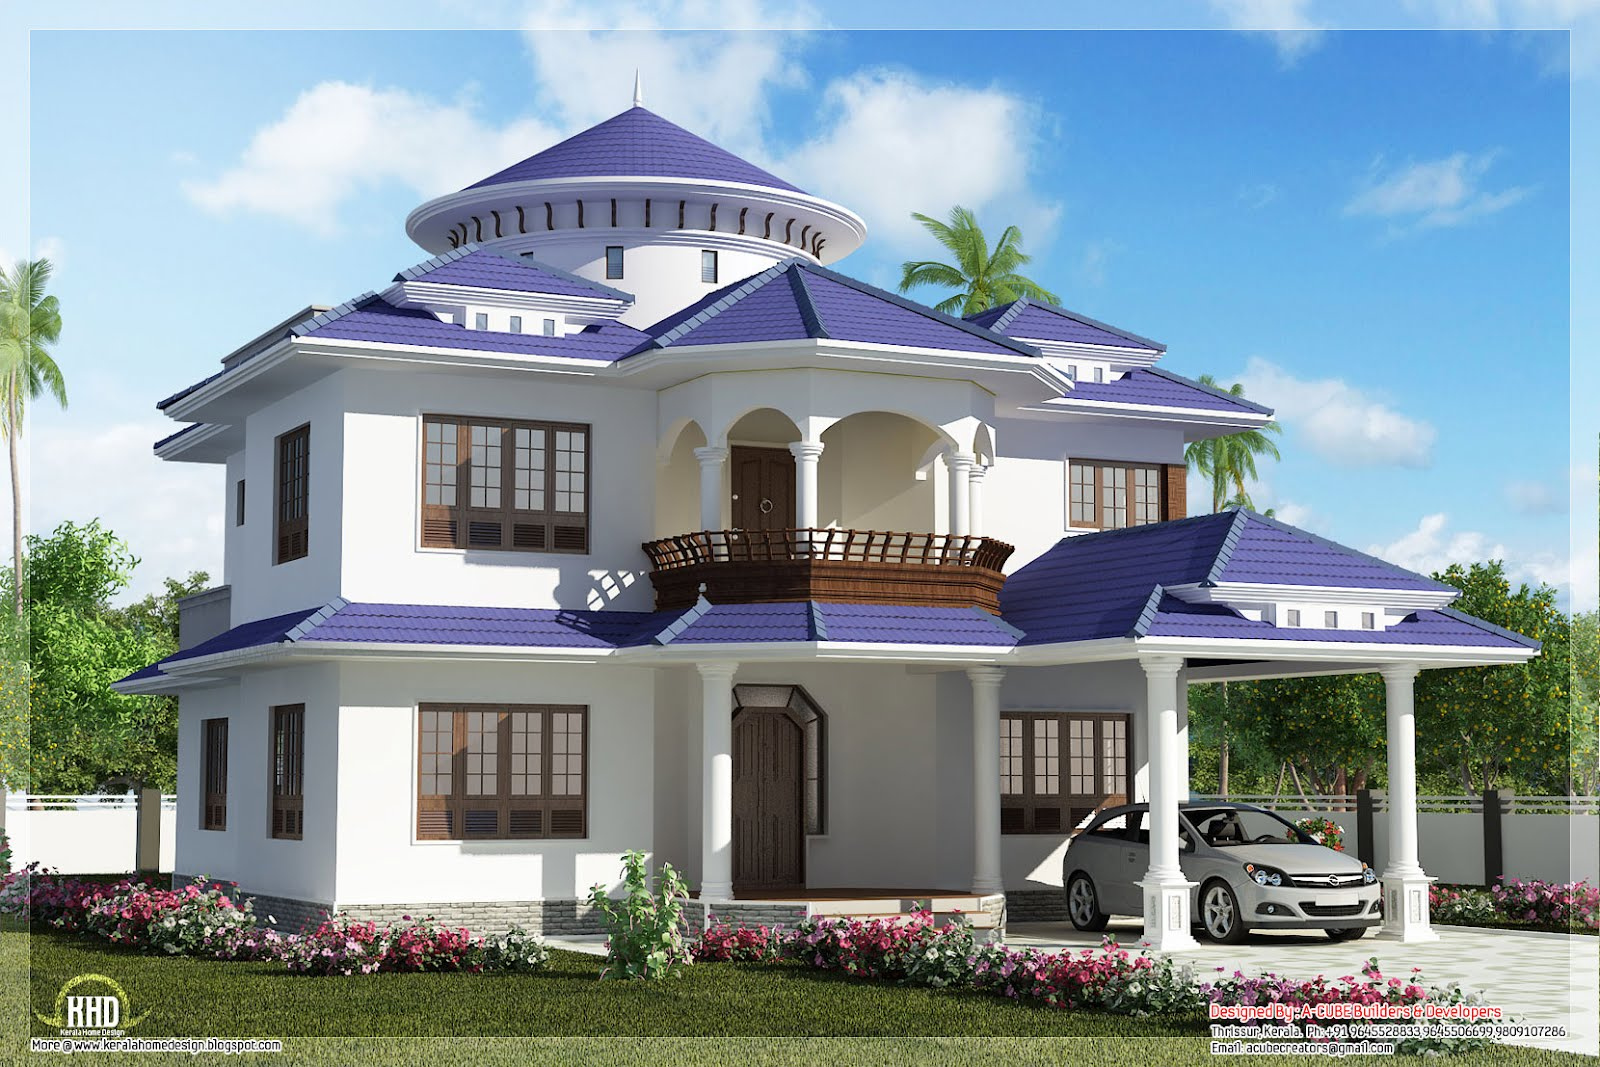 Stunning Dreamhouse Design 1600 x 1067 · 320 kB · jpeg